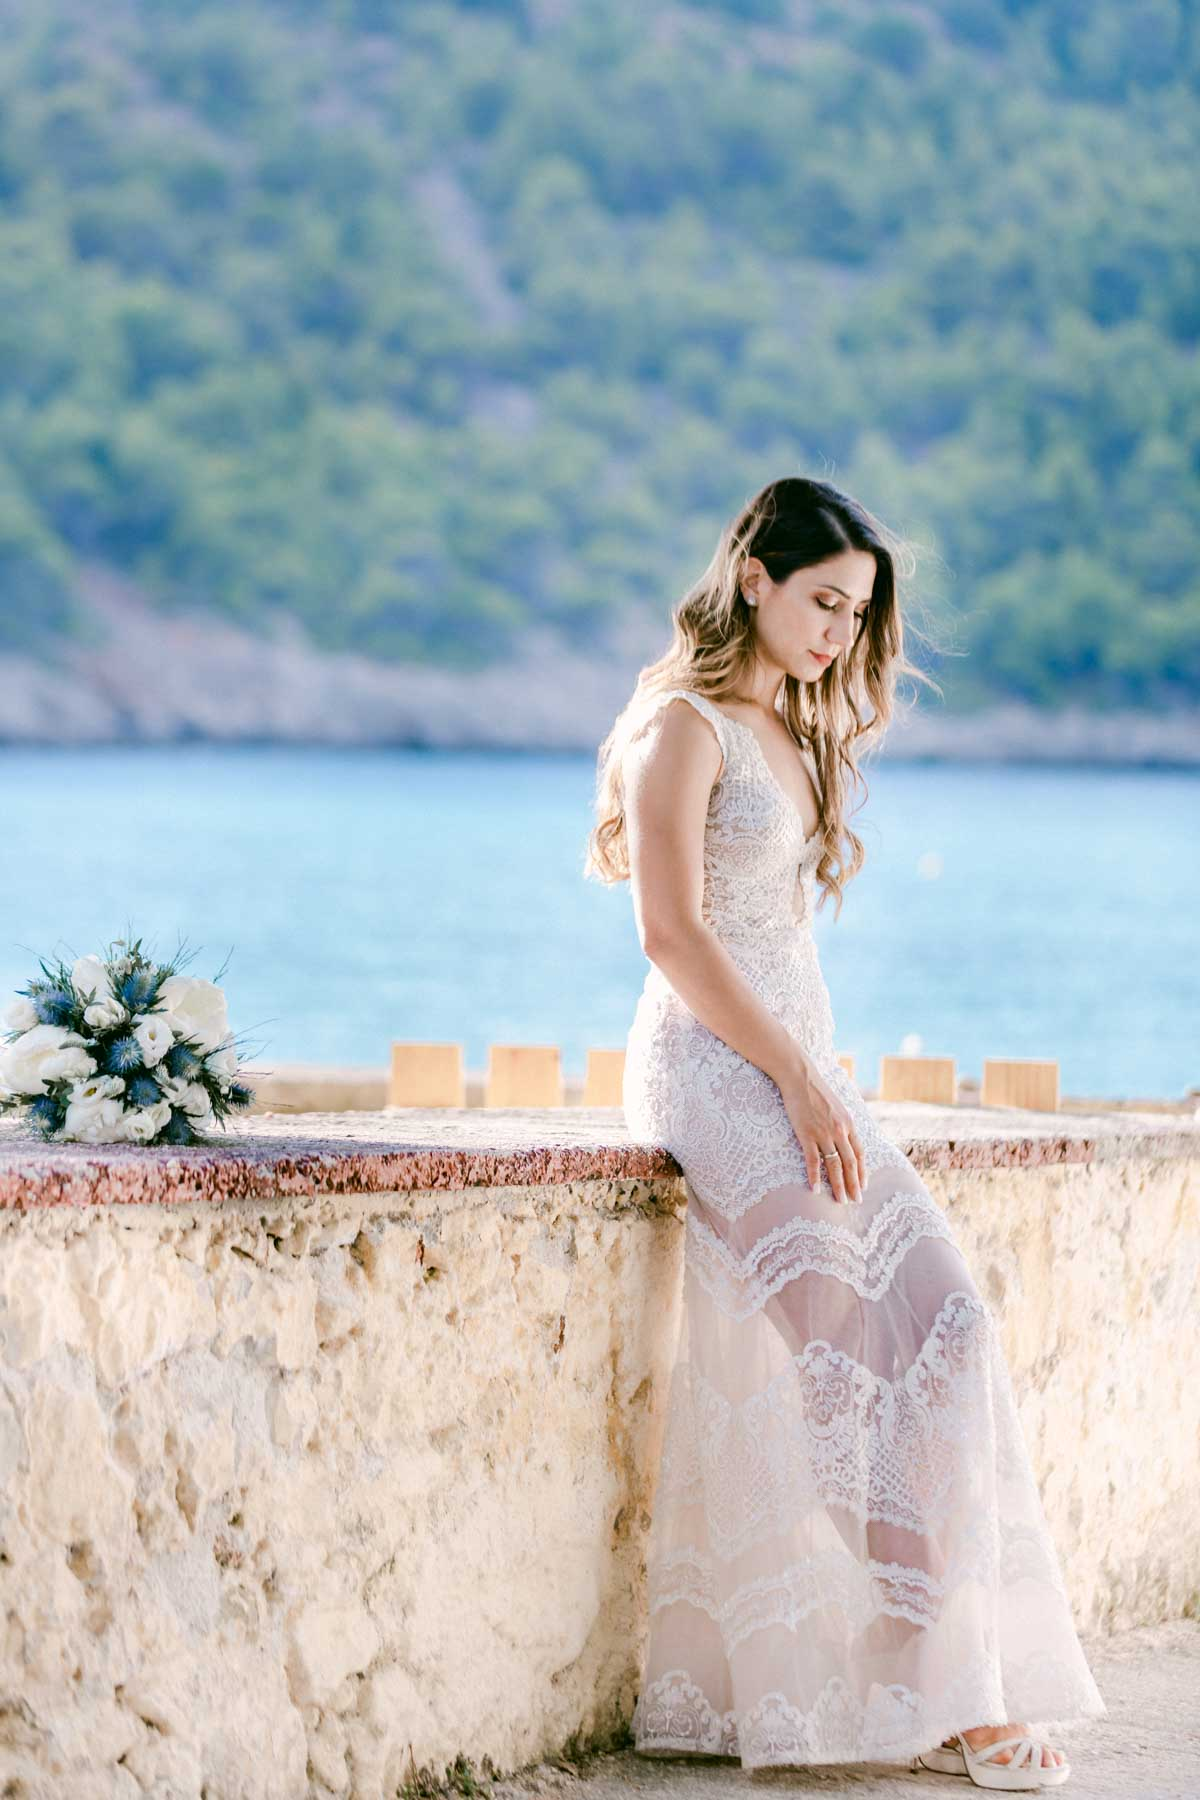 Next Day Session of Marina and Petros : Next day photo session  by Vicky and Nikiforos Photography Studio